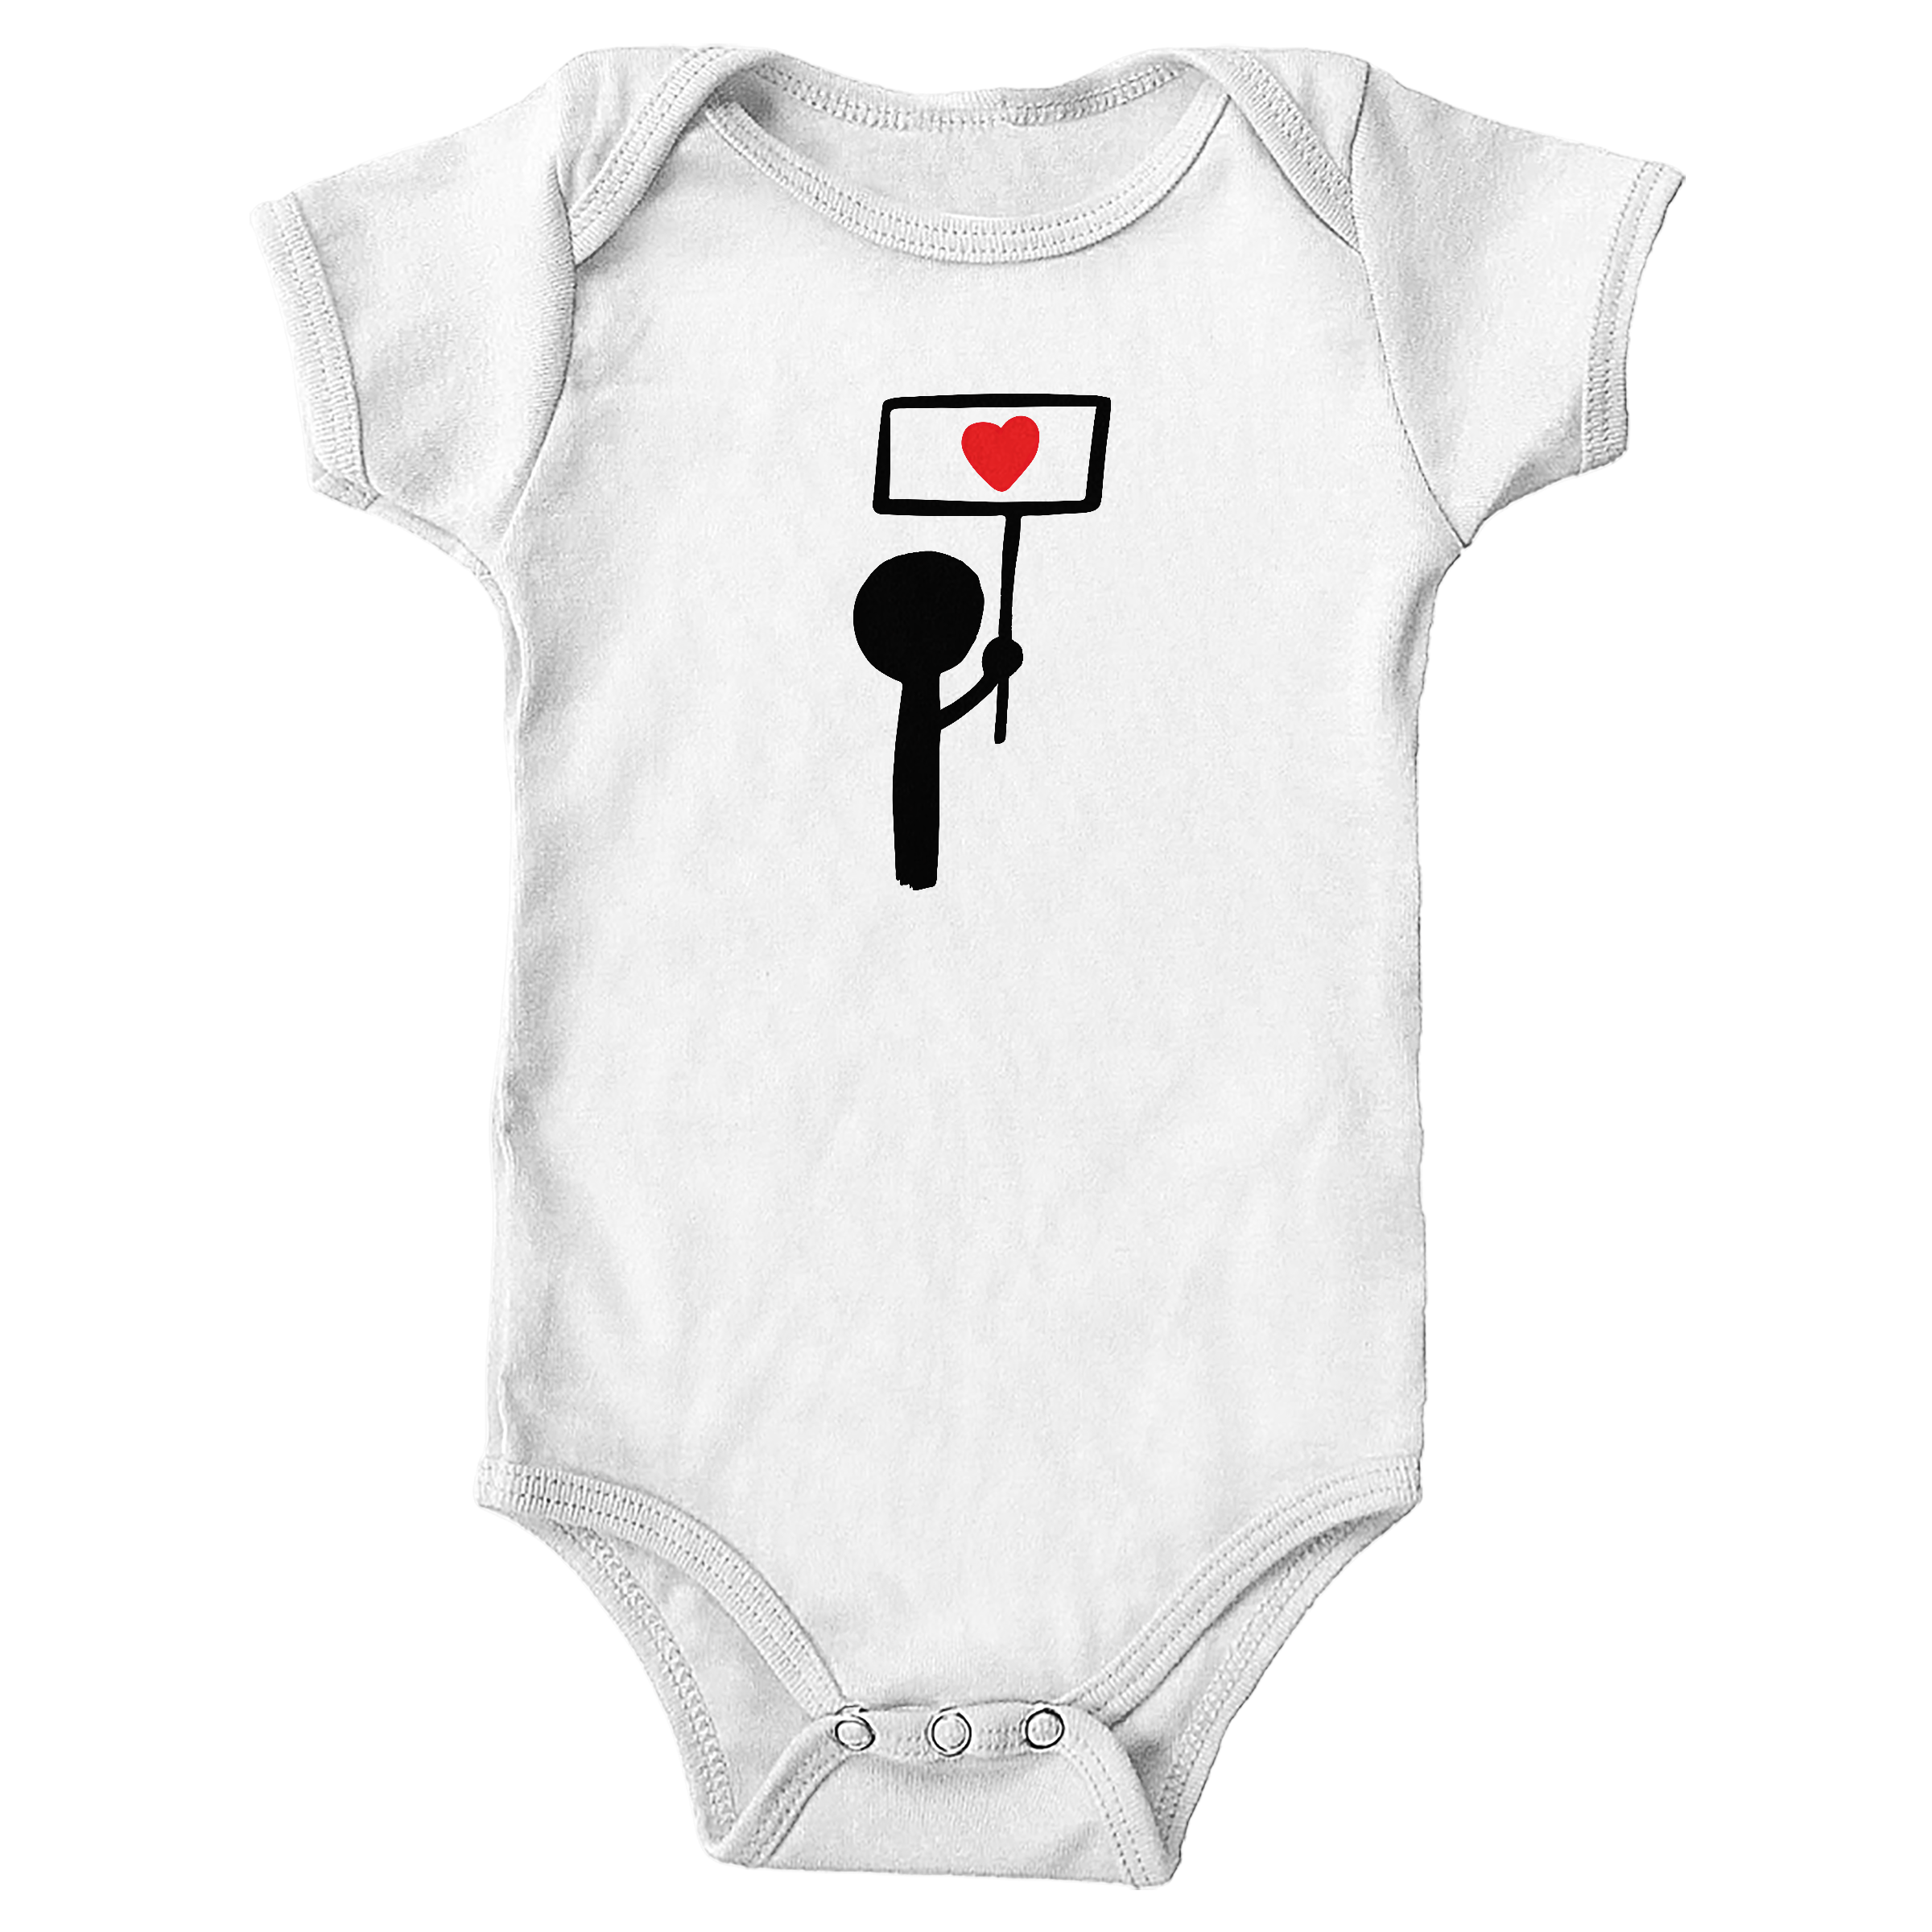 Stand for Love White (Onesie)